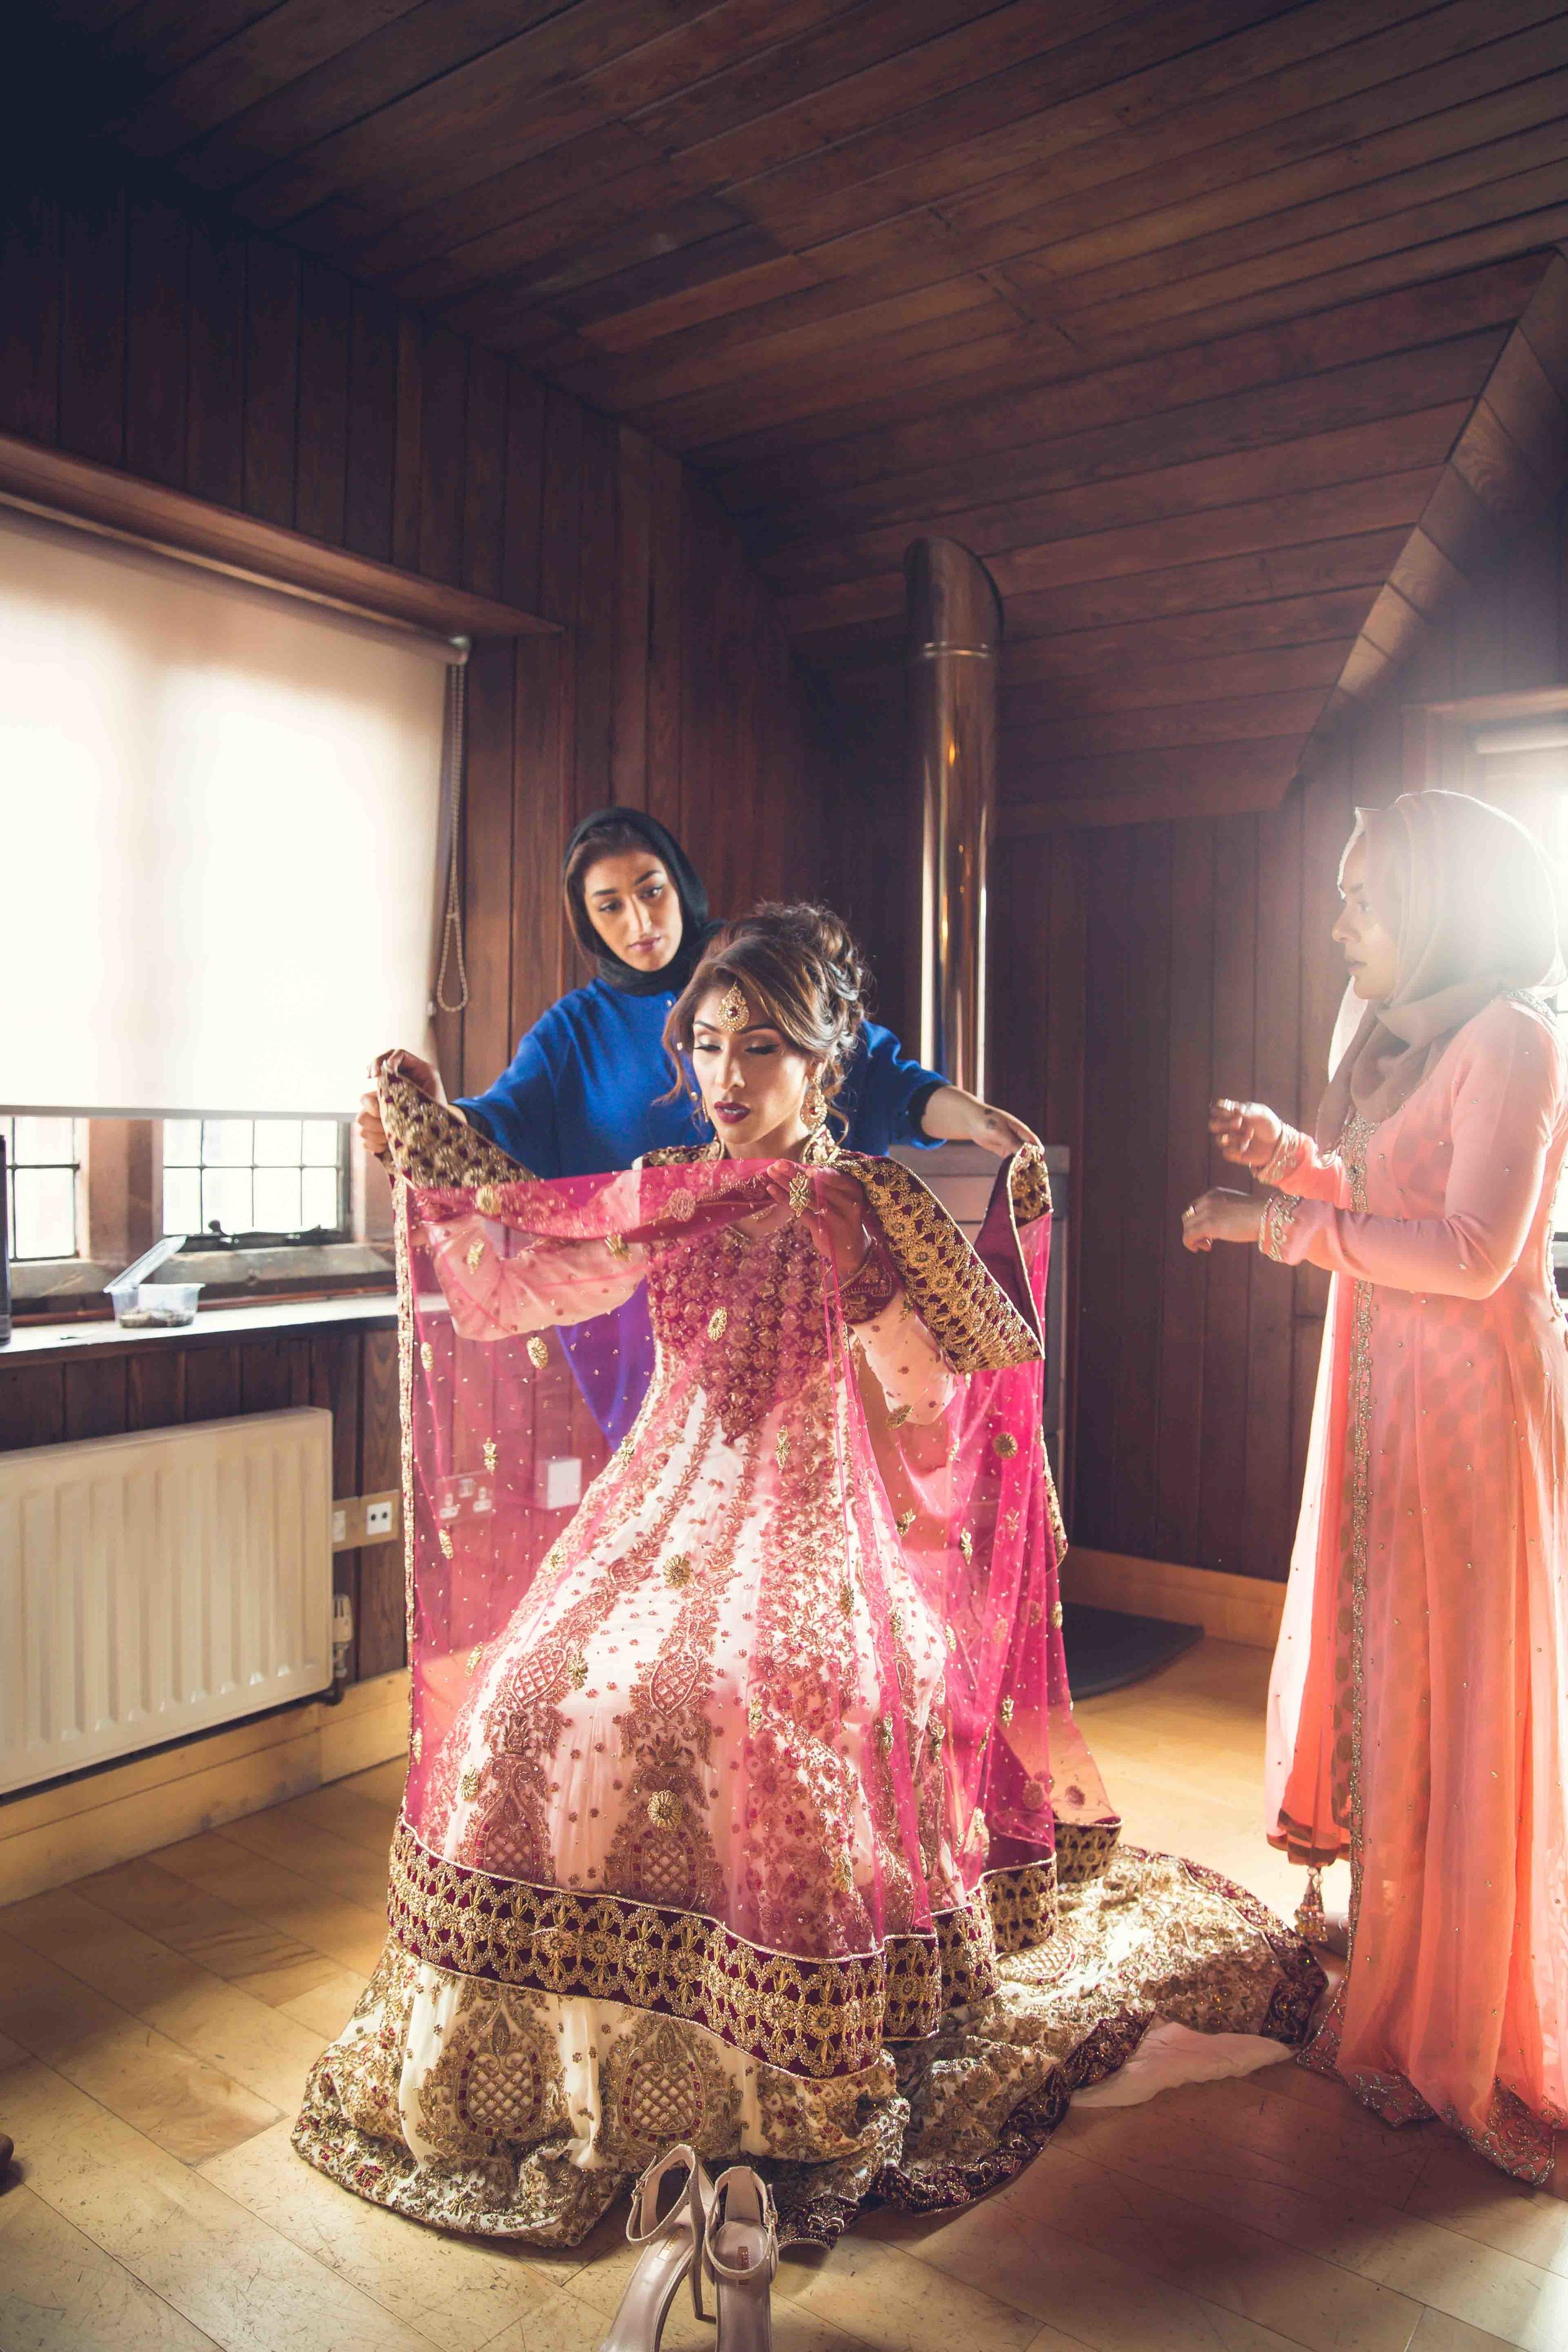 Asian Wedding Photographer Opu Sultan Photography Lyme Park Scotland Edinburgh Glasgow London Manchester Liverpool Birmingham Wedding Photos prewed shoot Azman & Saira Blog-48.jpg